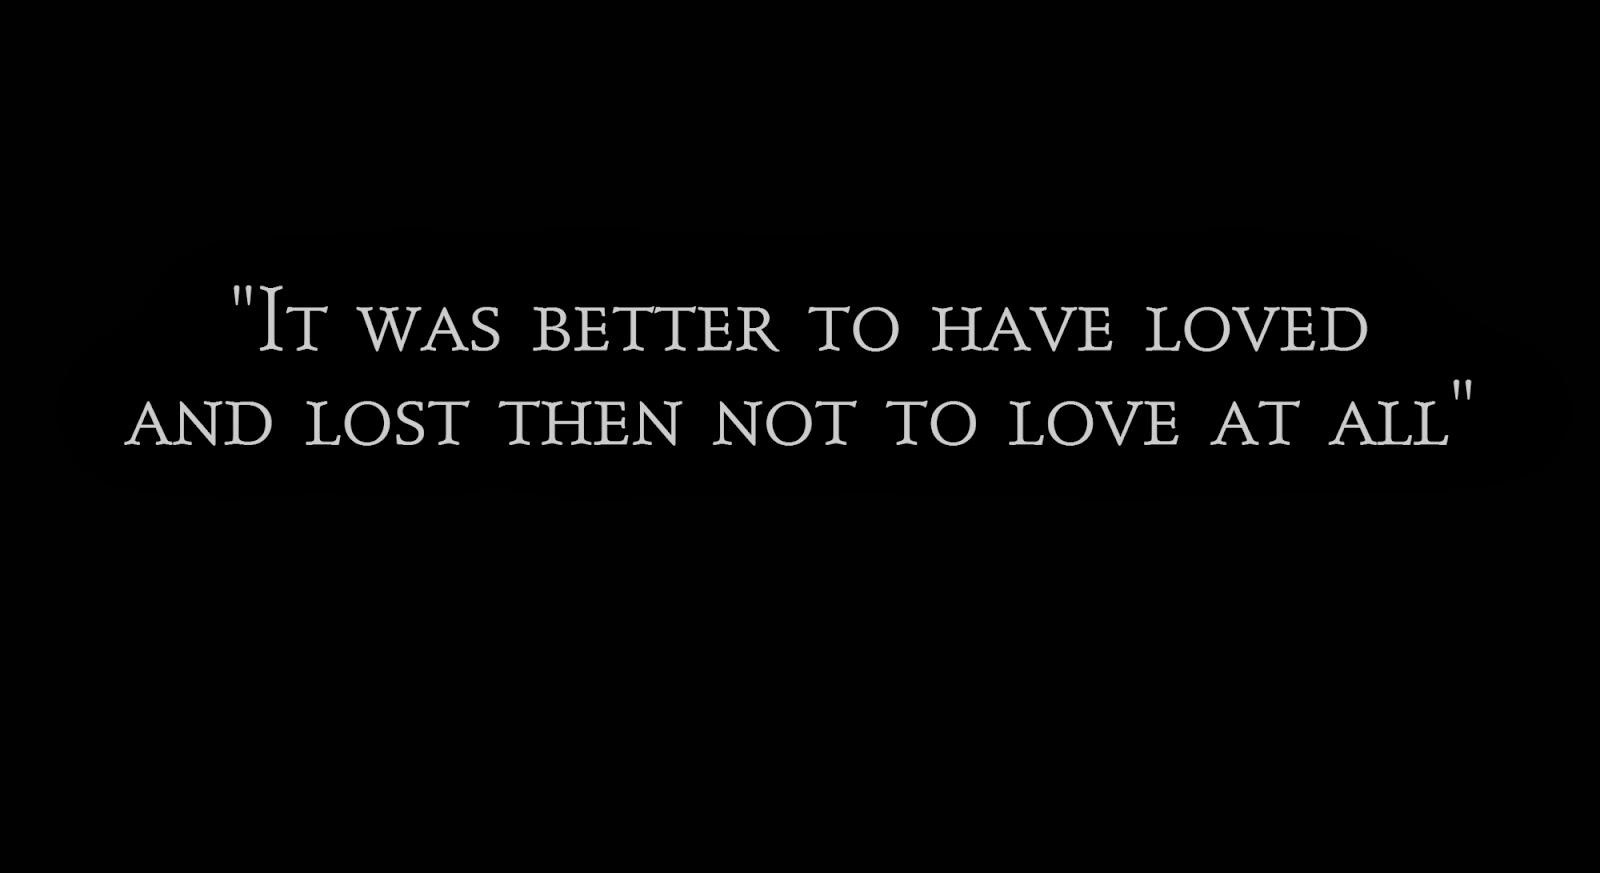 It was better to have loved and lost then not to love at all